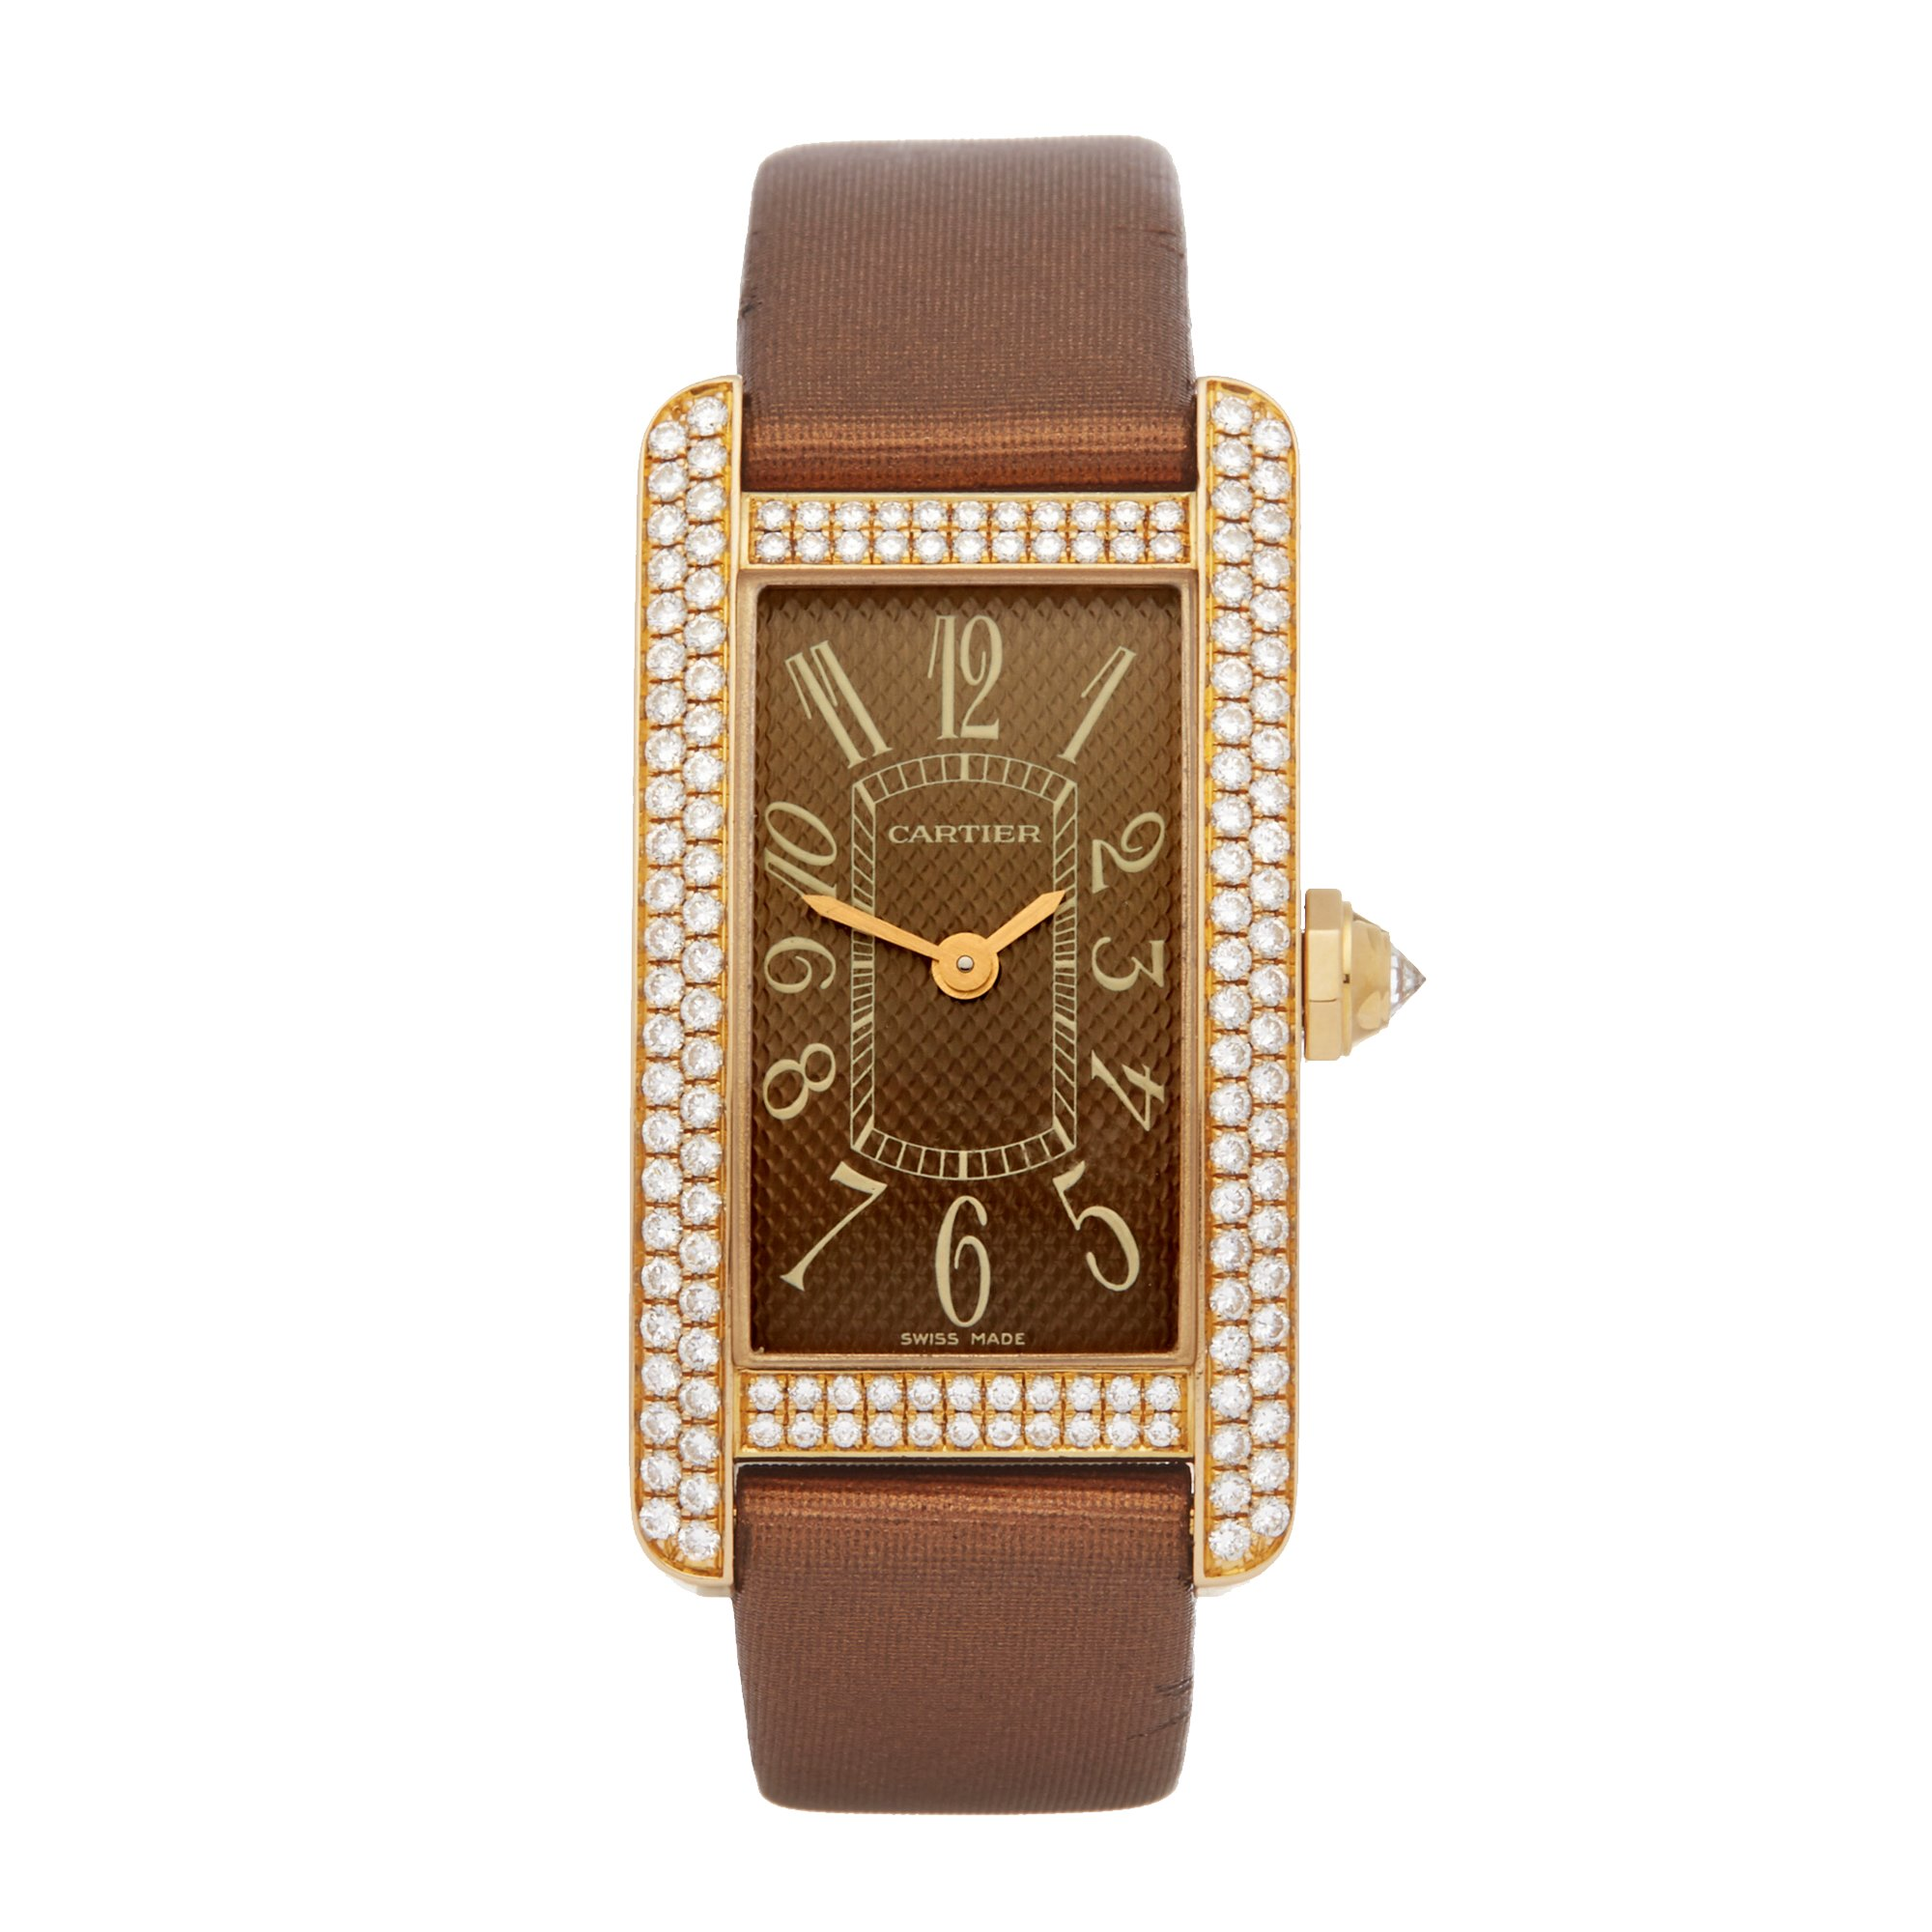 Cartier Tank Americaine Diamond 18K Yellow Gold 2482 or WB705631